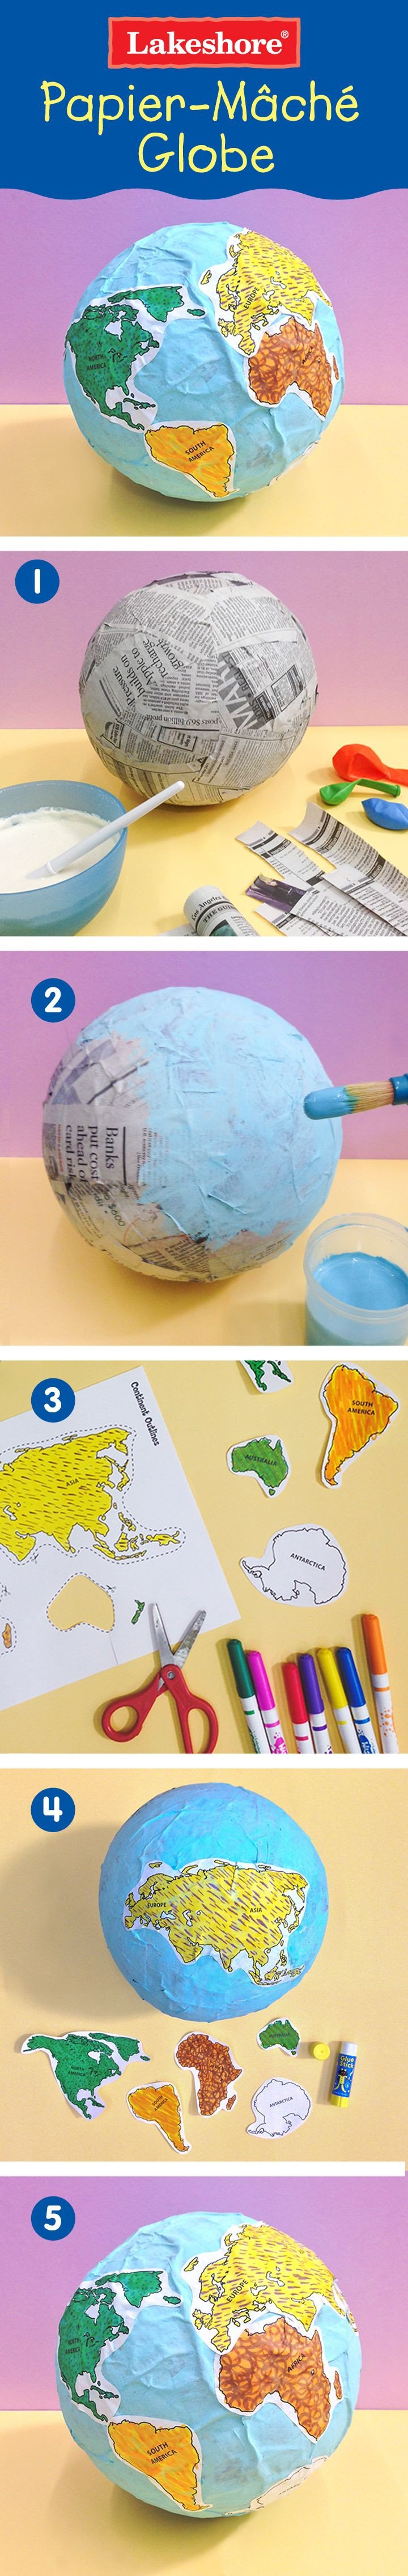 Continent Templates for Globe 25 Best Ideas About History Projects On Pinterest